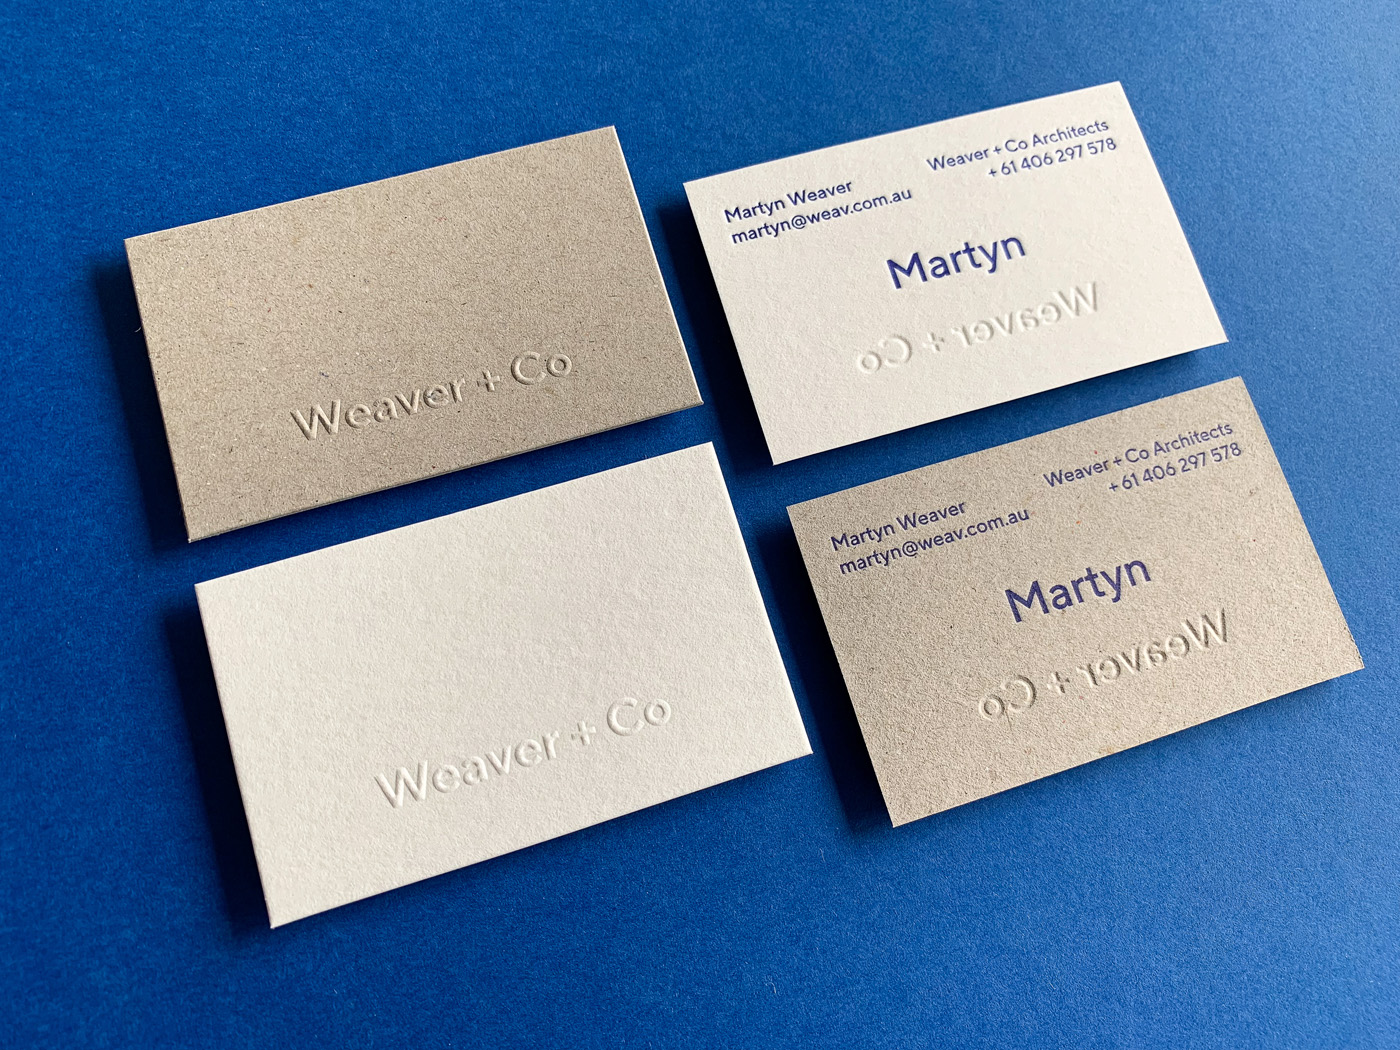 Letter pressed business cards for Martyn Weaver Co on Boxboard and Wild 2